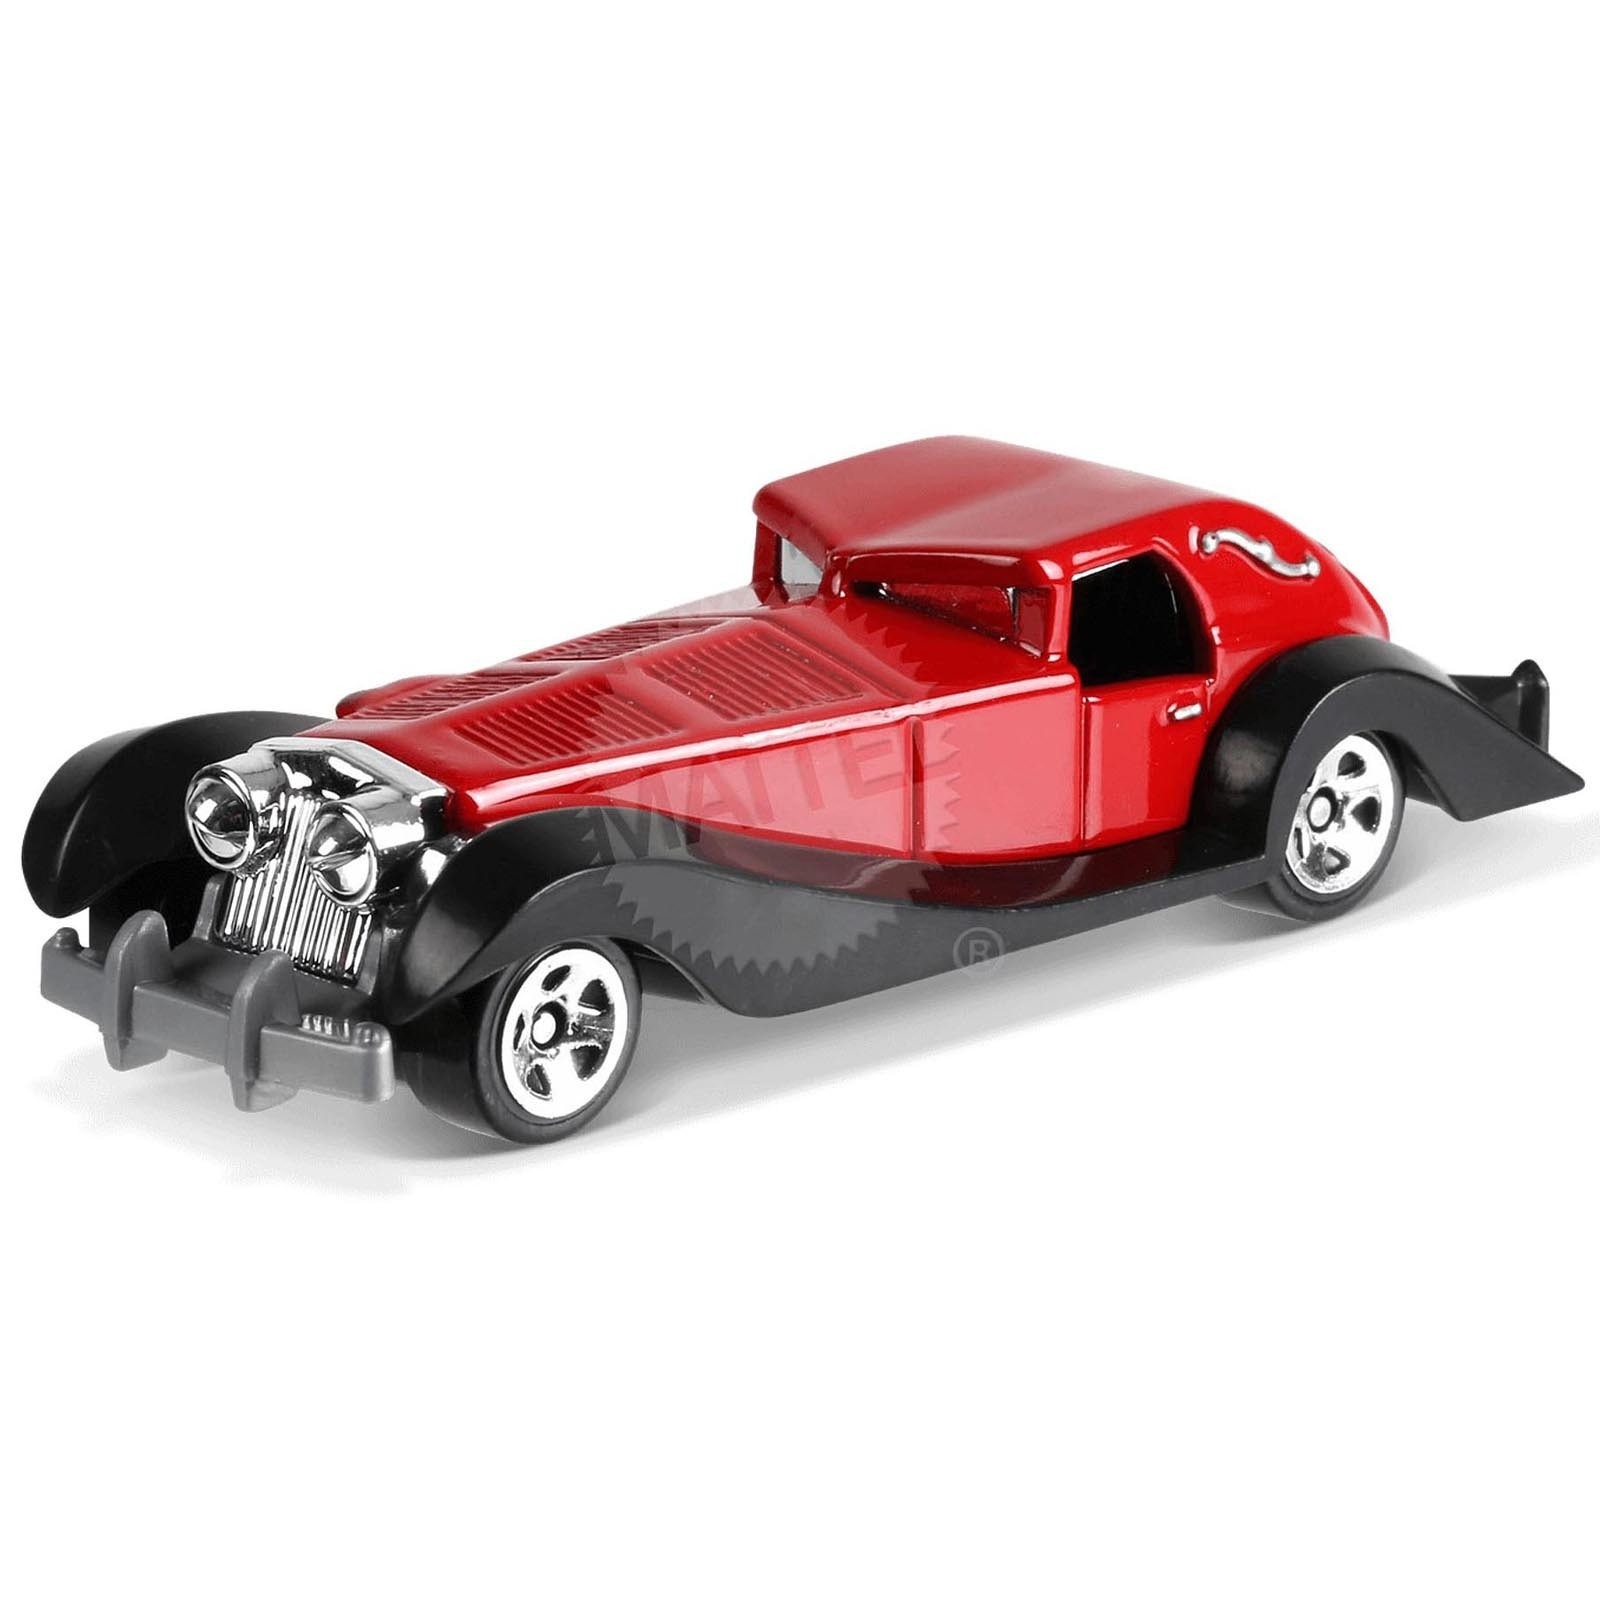 Hot Wheels - Cruella de Vil - 101 Dálmatas - FJW04